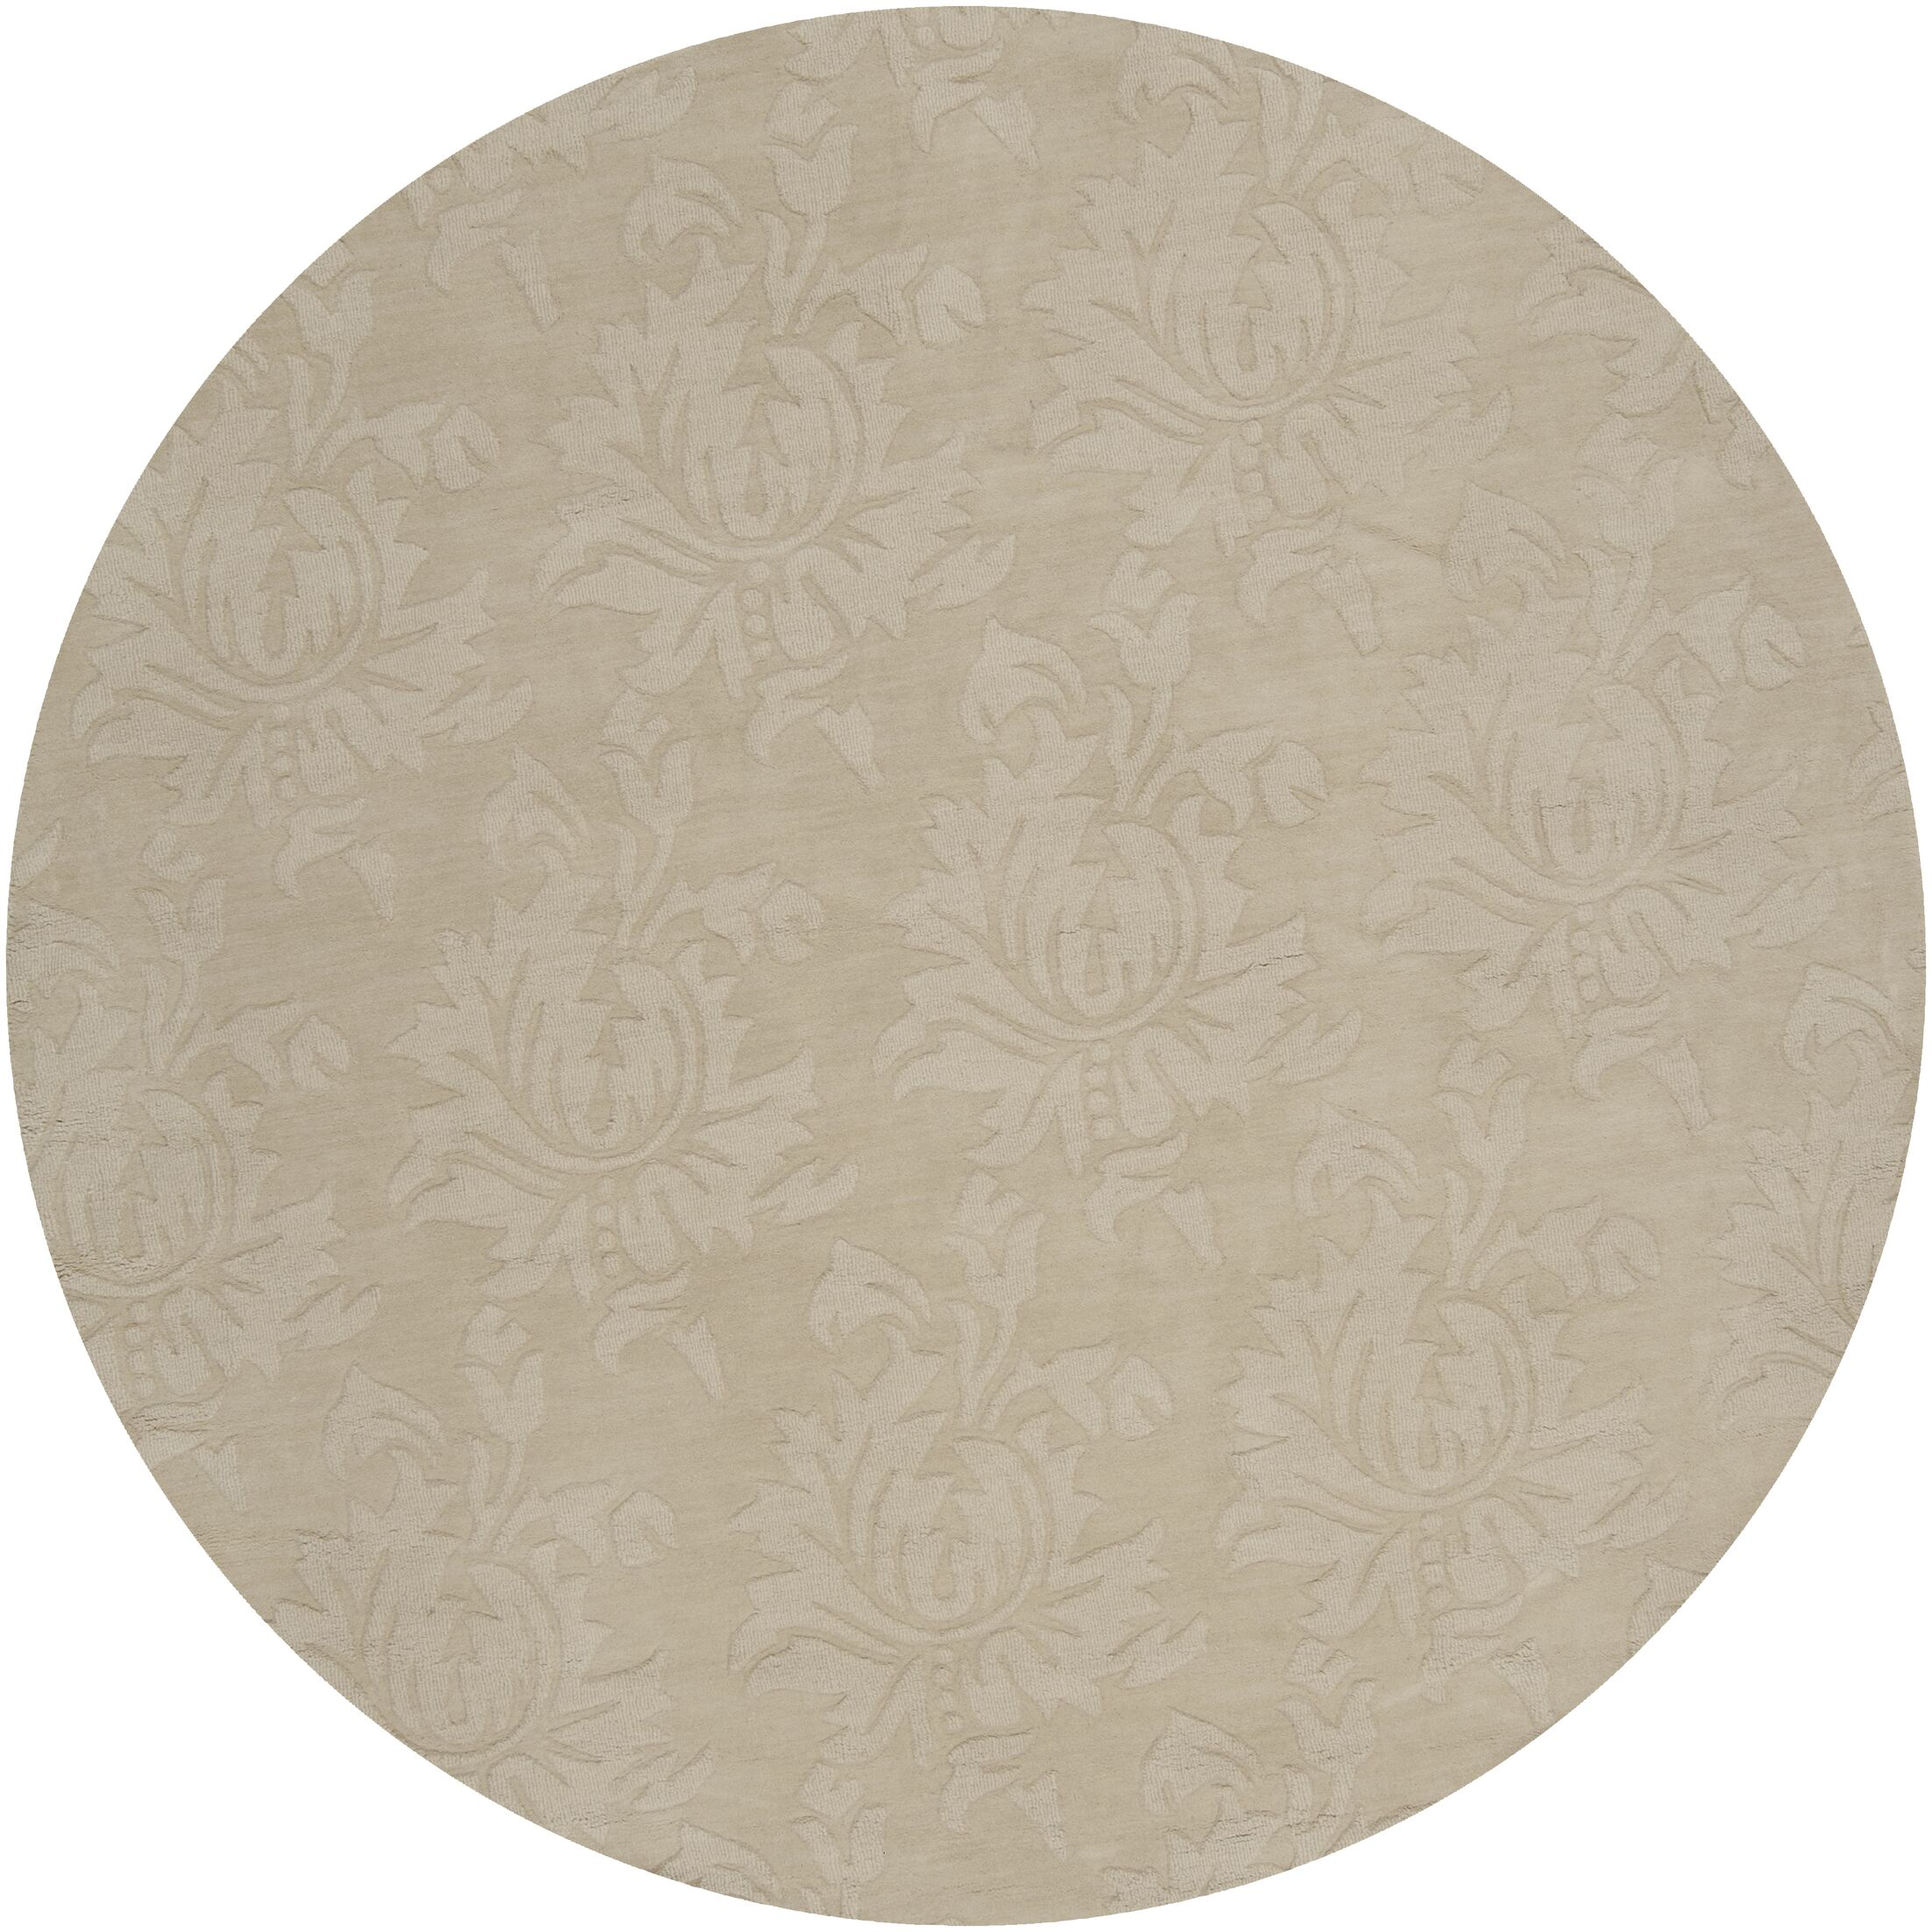 Ardal Hand-Woven Wool Beige Area Rug Rug Size: Round 8'